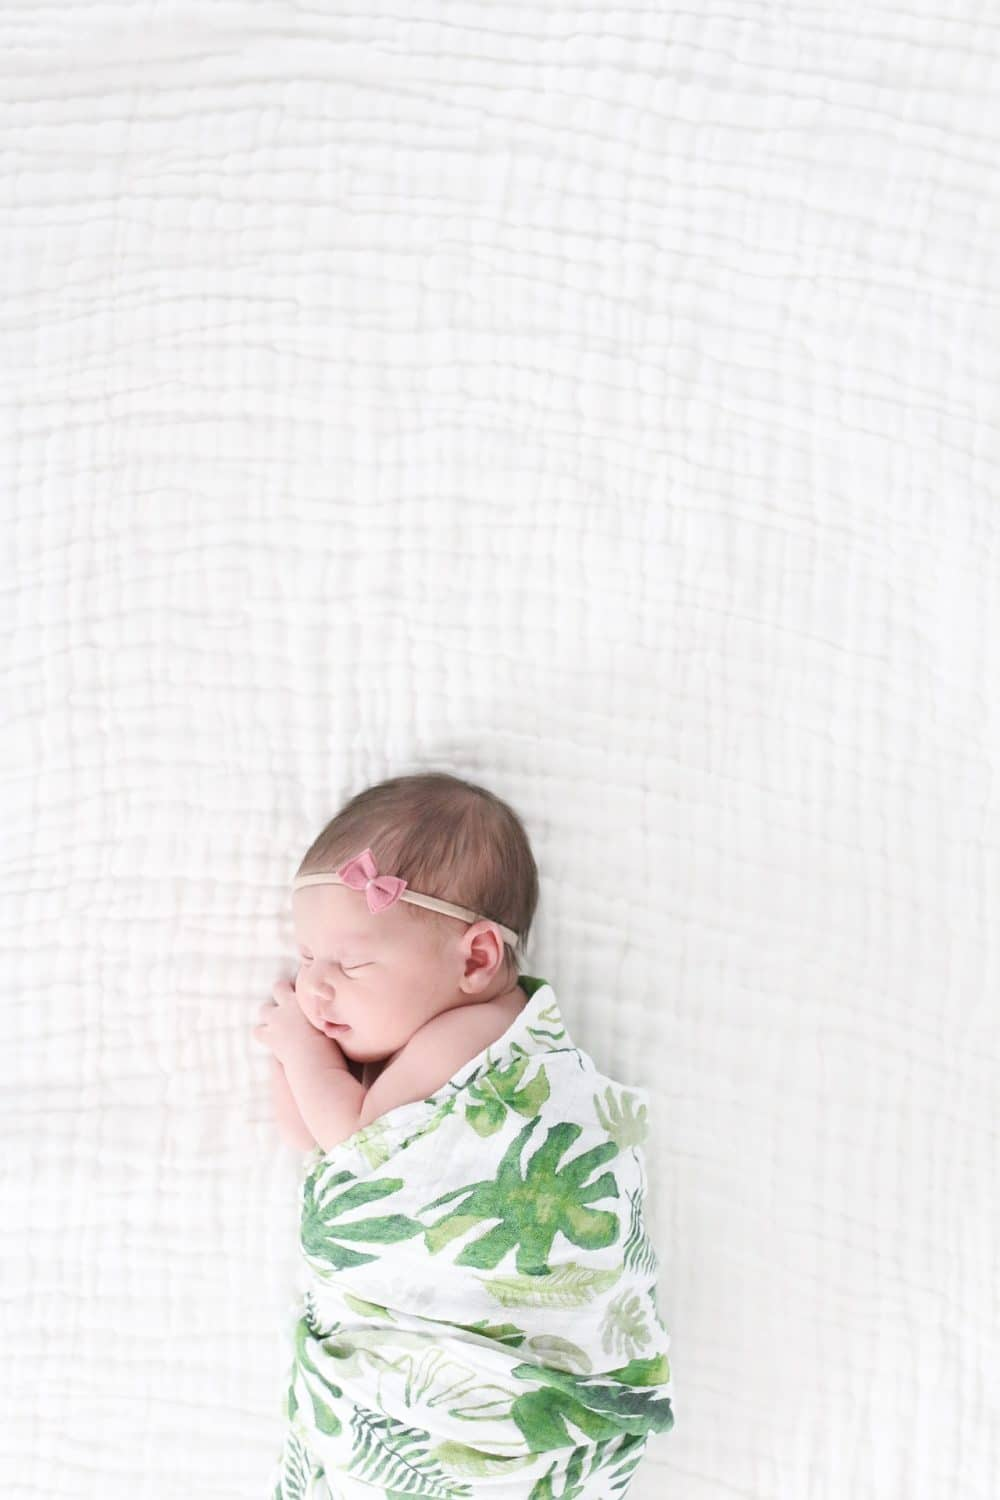 Its a great size for newborns 22 settup for your photos near the best light big open windows sliding glass doors storm doors